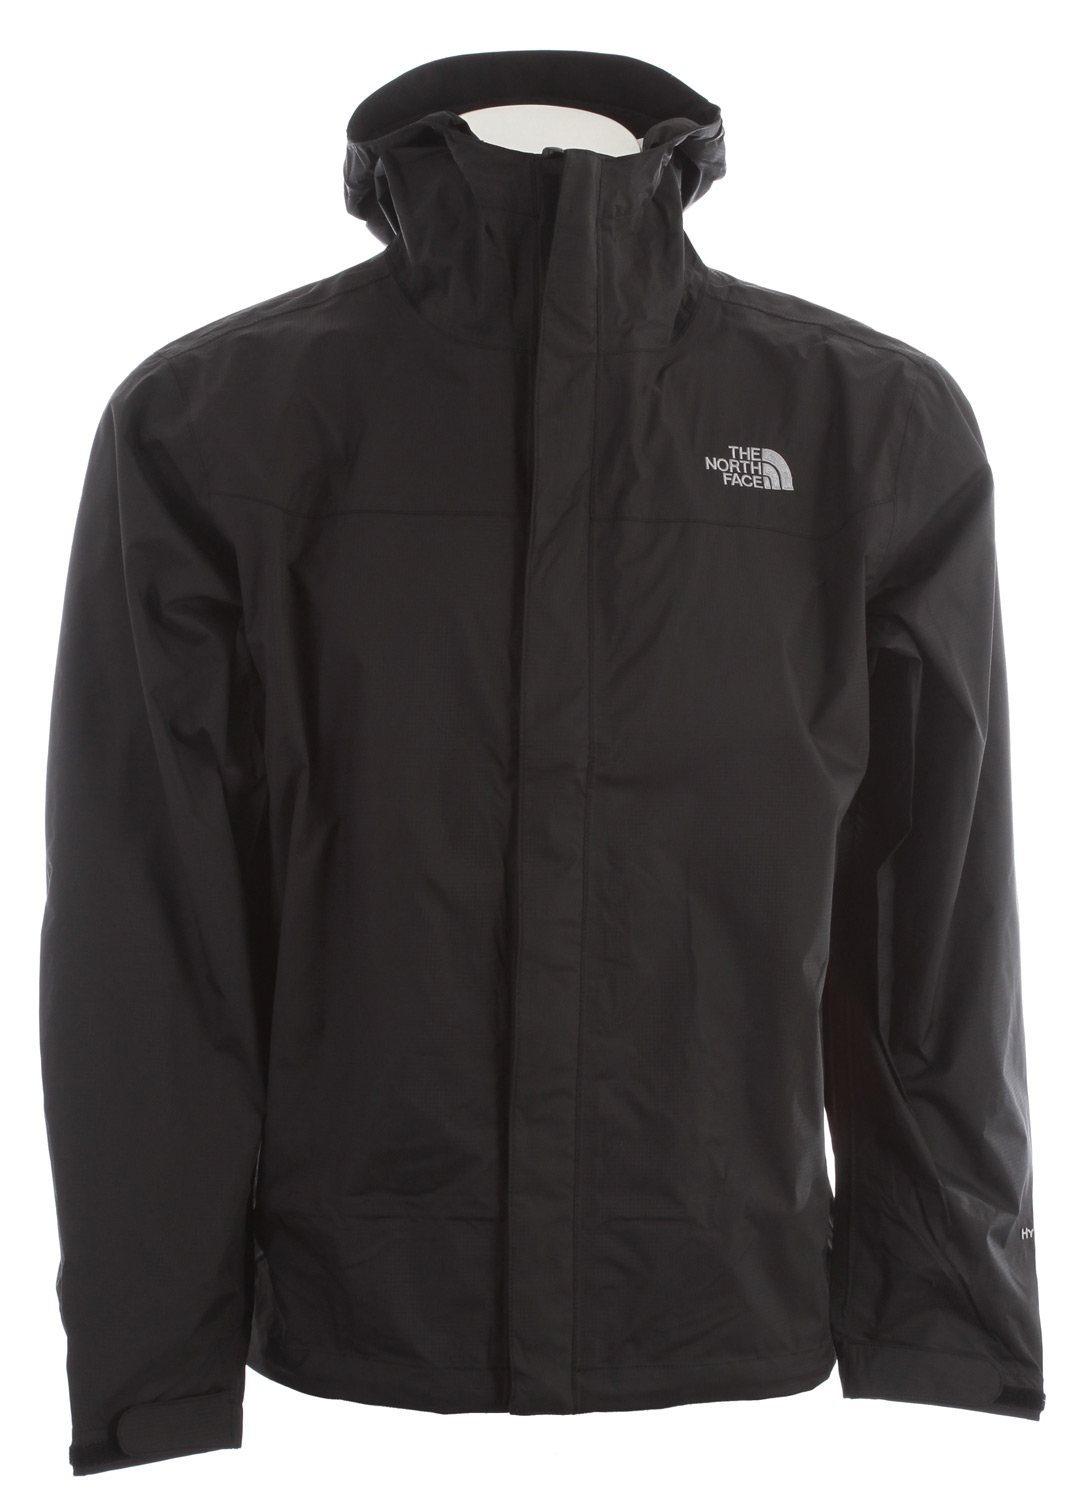 Classic, year-round rainwear, constructed with HyVent 2.5L EC fabric, an eco-conscious material; our most popular waterproof, breathable jacket.Key Features of the The North Face Venture Jacket: Waterproof, breathable, seam sealed Attached, fully adjustable hood with hidden drawcord system Center front zip and Velcro closure Brushed chin guard lining Pit-zips Two secure-zip hand pockets Stowable in hand pocket Self fabric adjustable Velcro cuff tabs Hem cinch-cord - $79.20